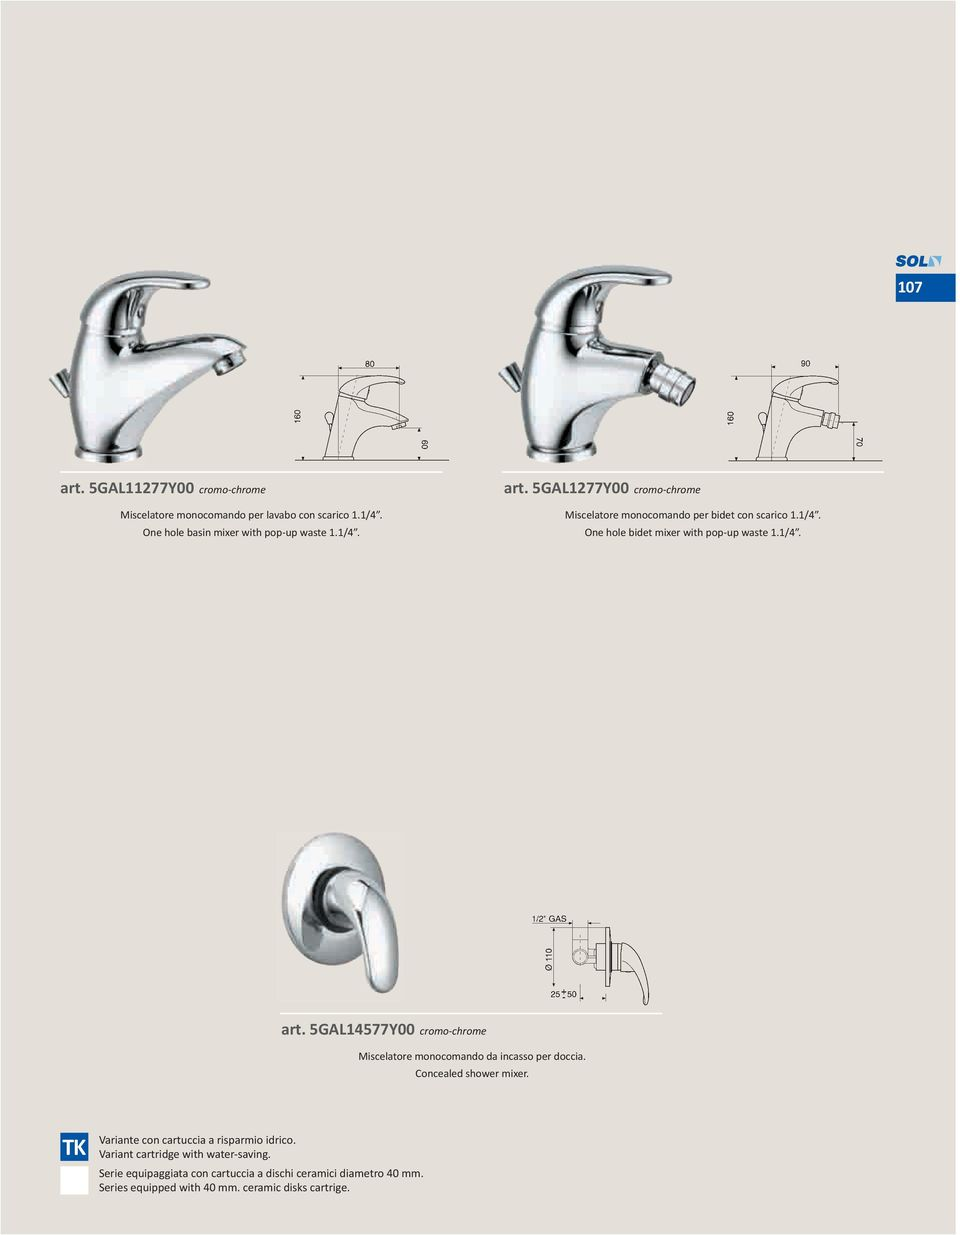 Concealed shower mixer. TK Variante con cartuccia a risparmio idrico. Variant cartridge with water-saving.